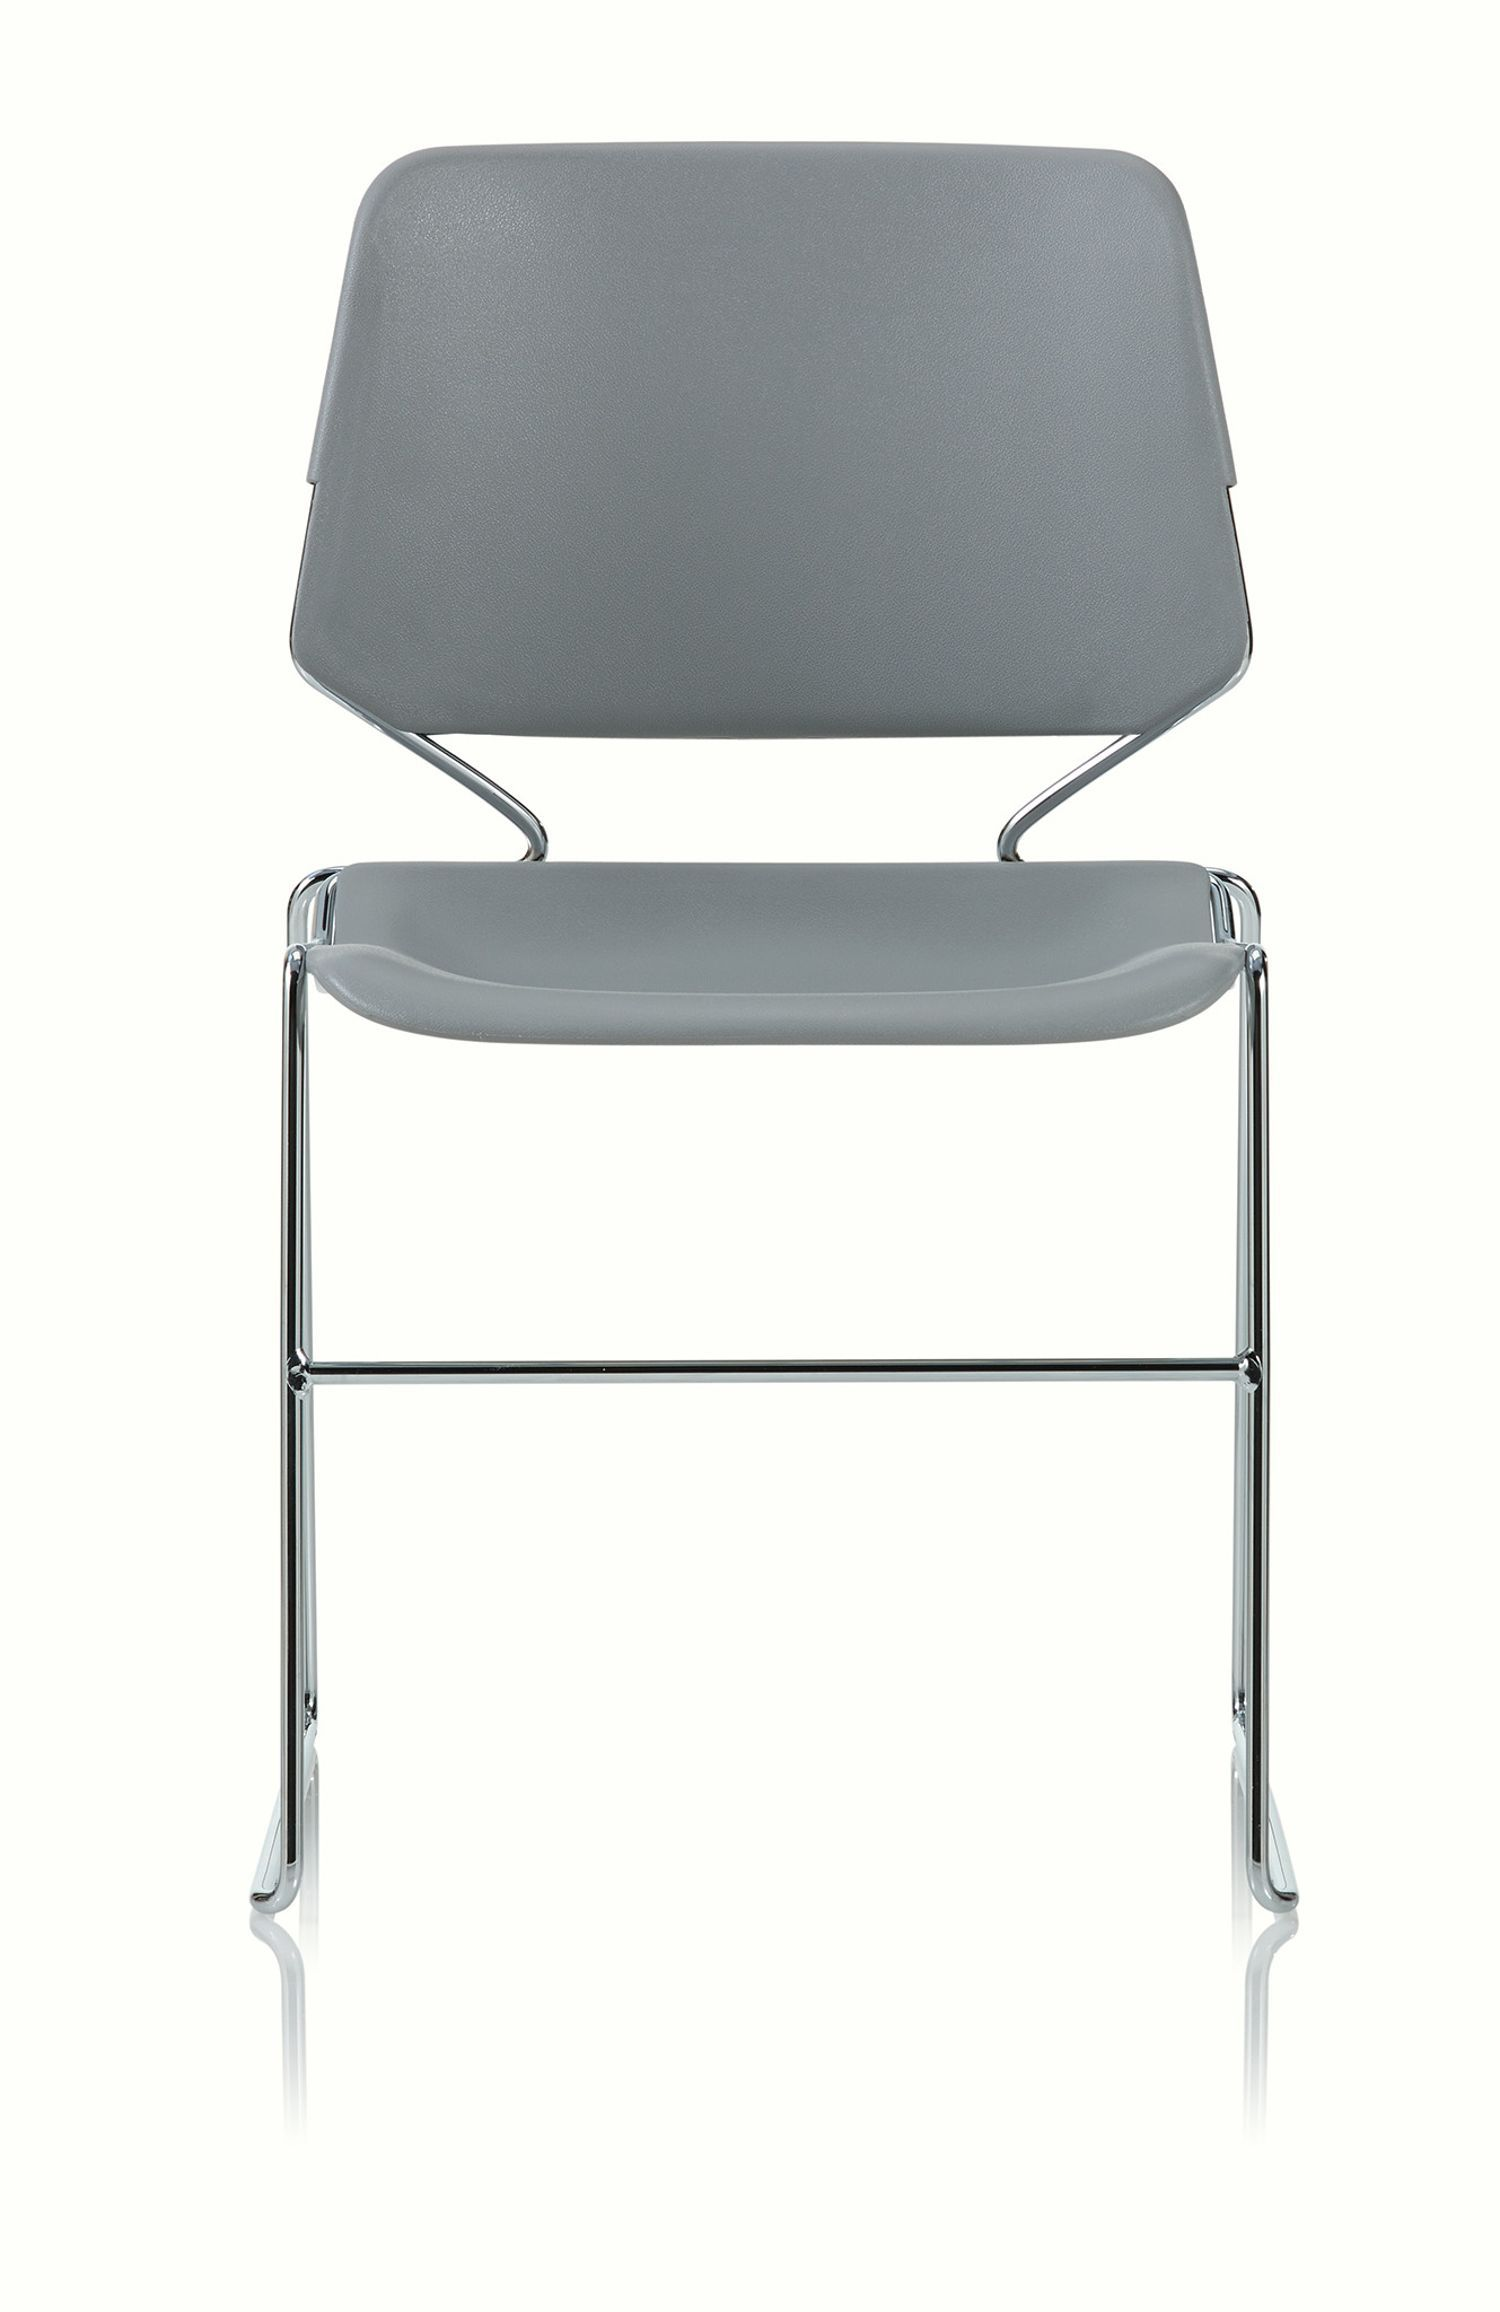 Matrix Stack Chair : Products : Product Groups : KI